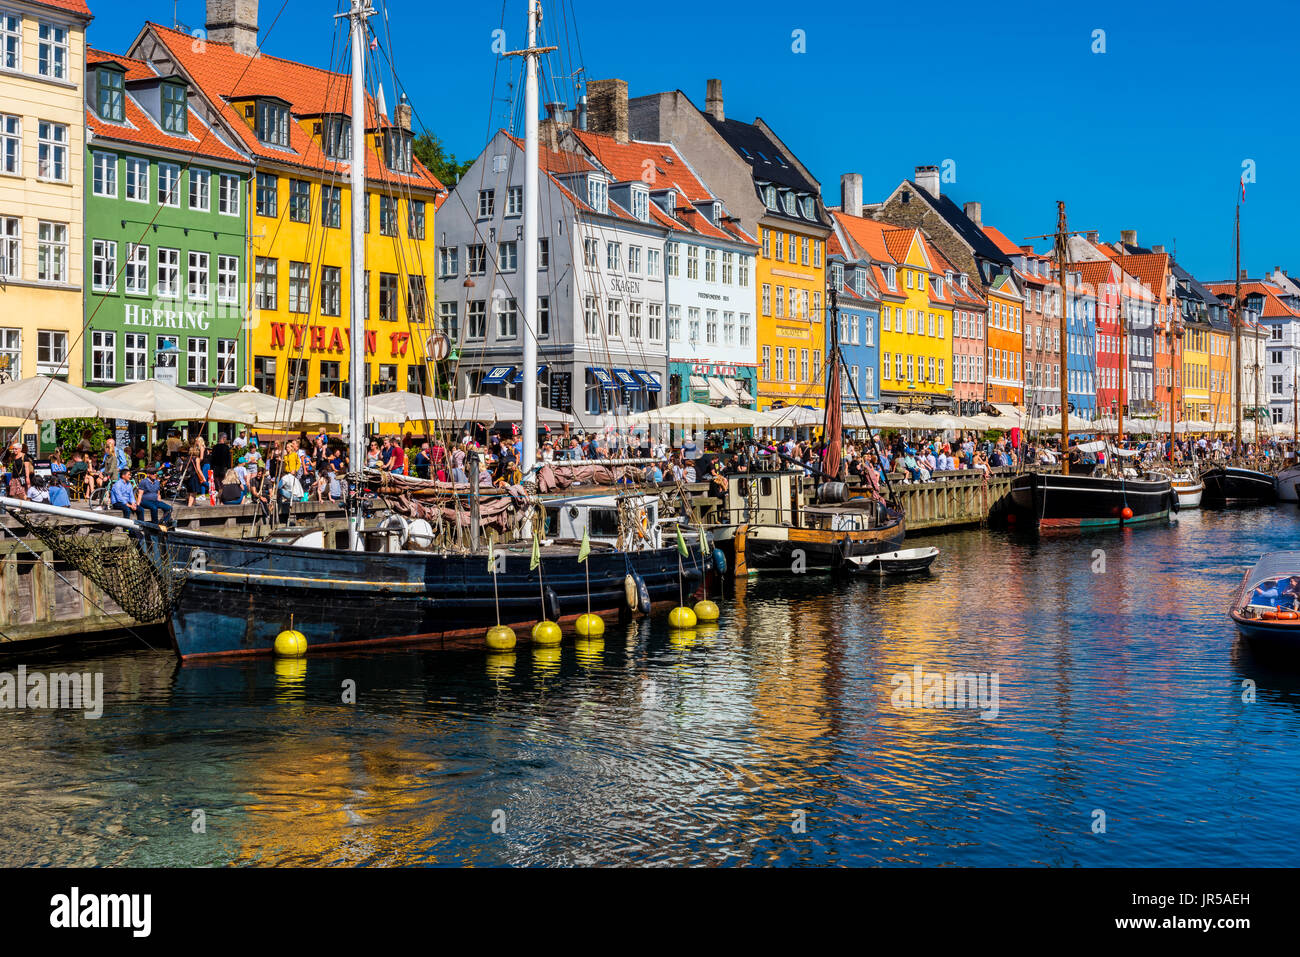 Nyhavn harbor and promenade in Copenhagen, Denmark. Nyhavn is the most famous landmark of Copenhagen. - Stock Image